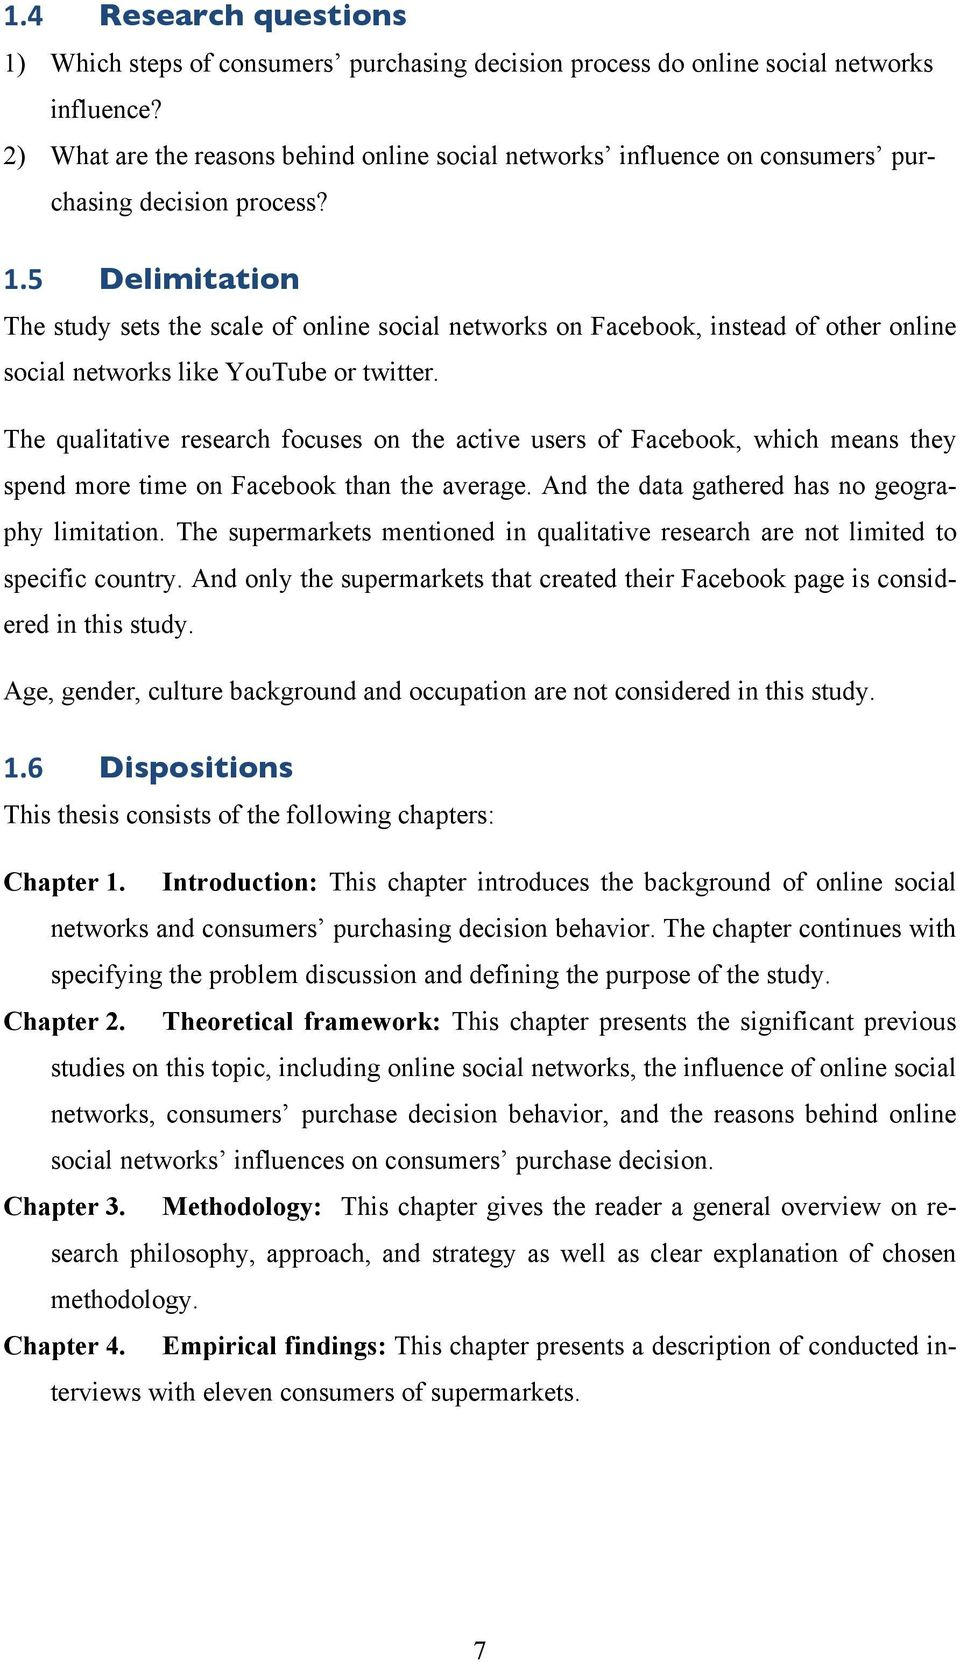 5 Delimitation The study sets the scale of online social networks on Facebook, instead of other online social networks like YouTube or twitter.